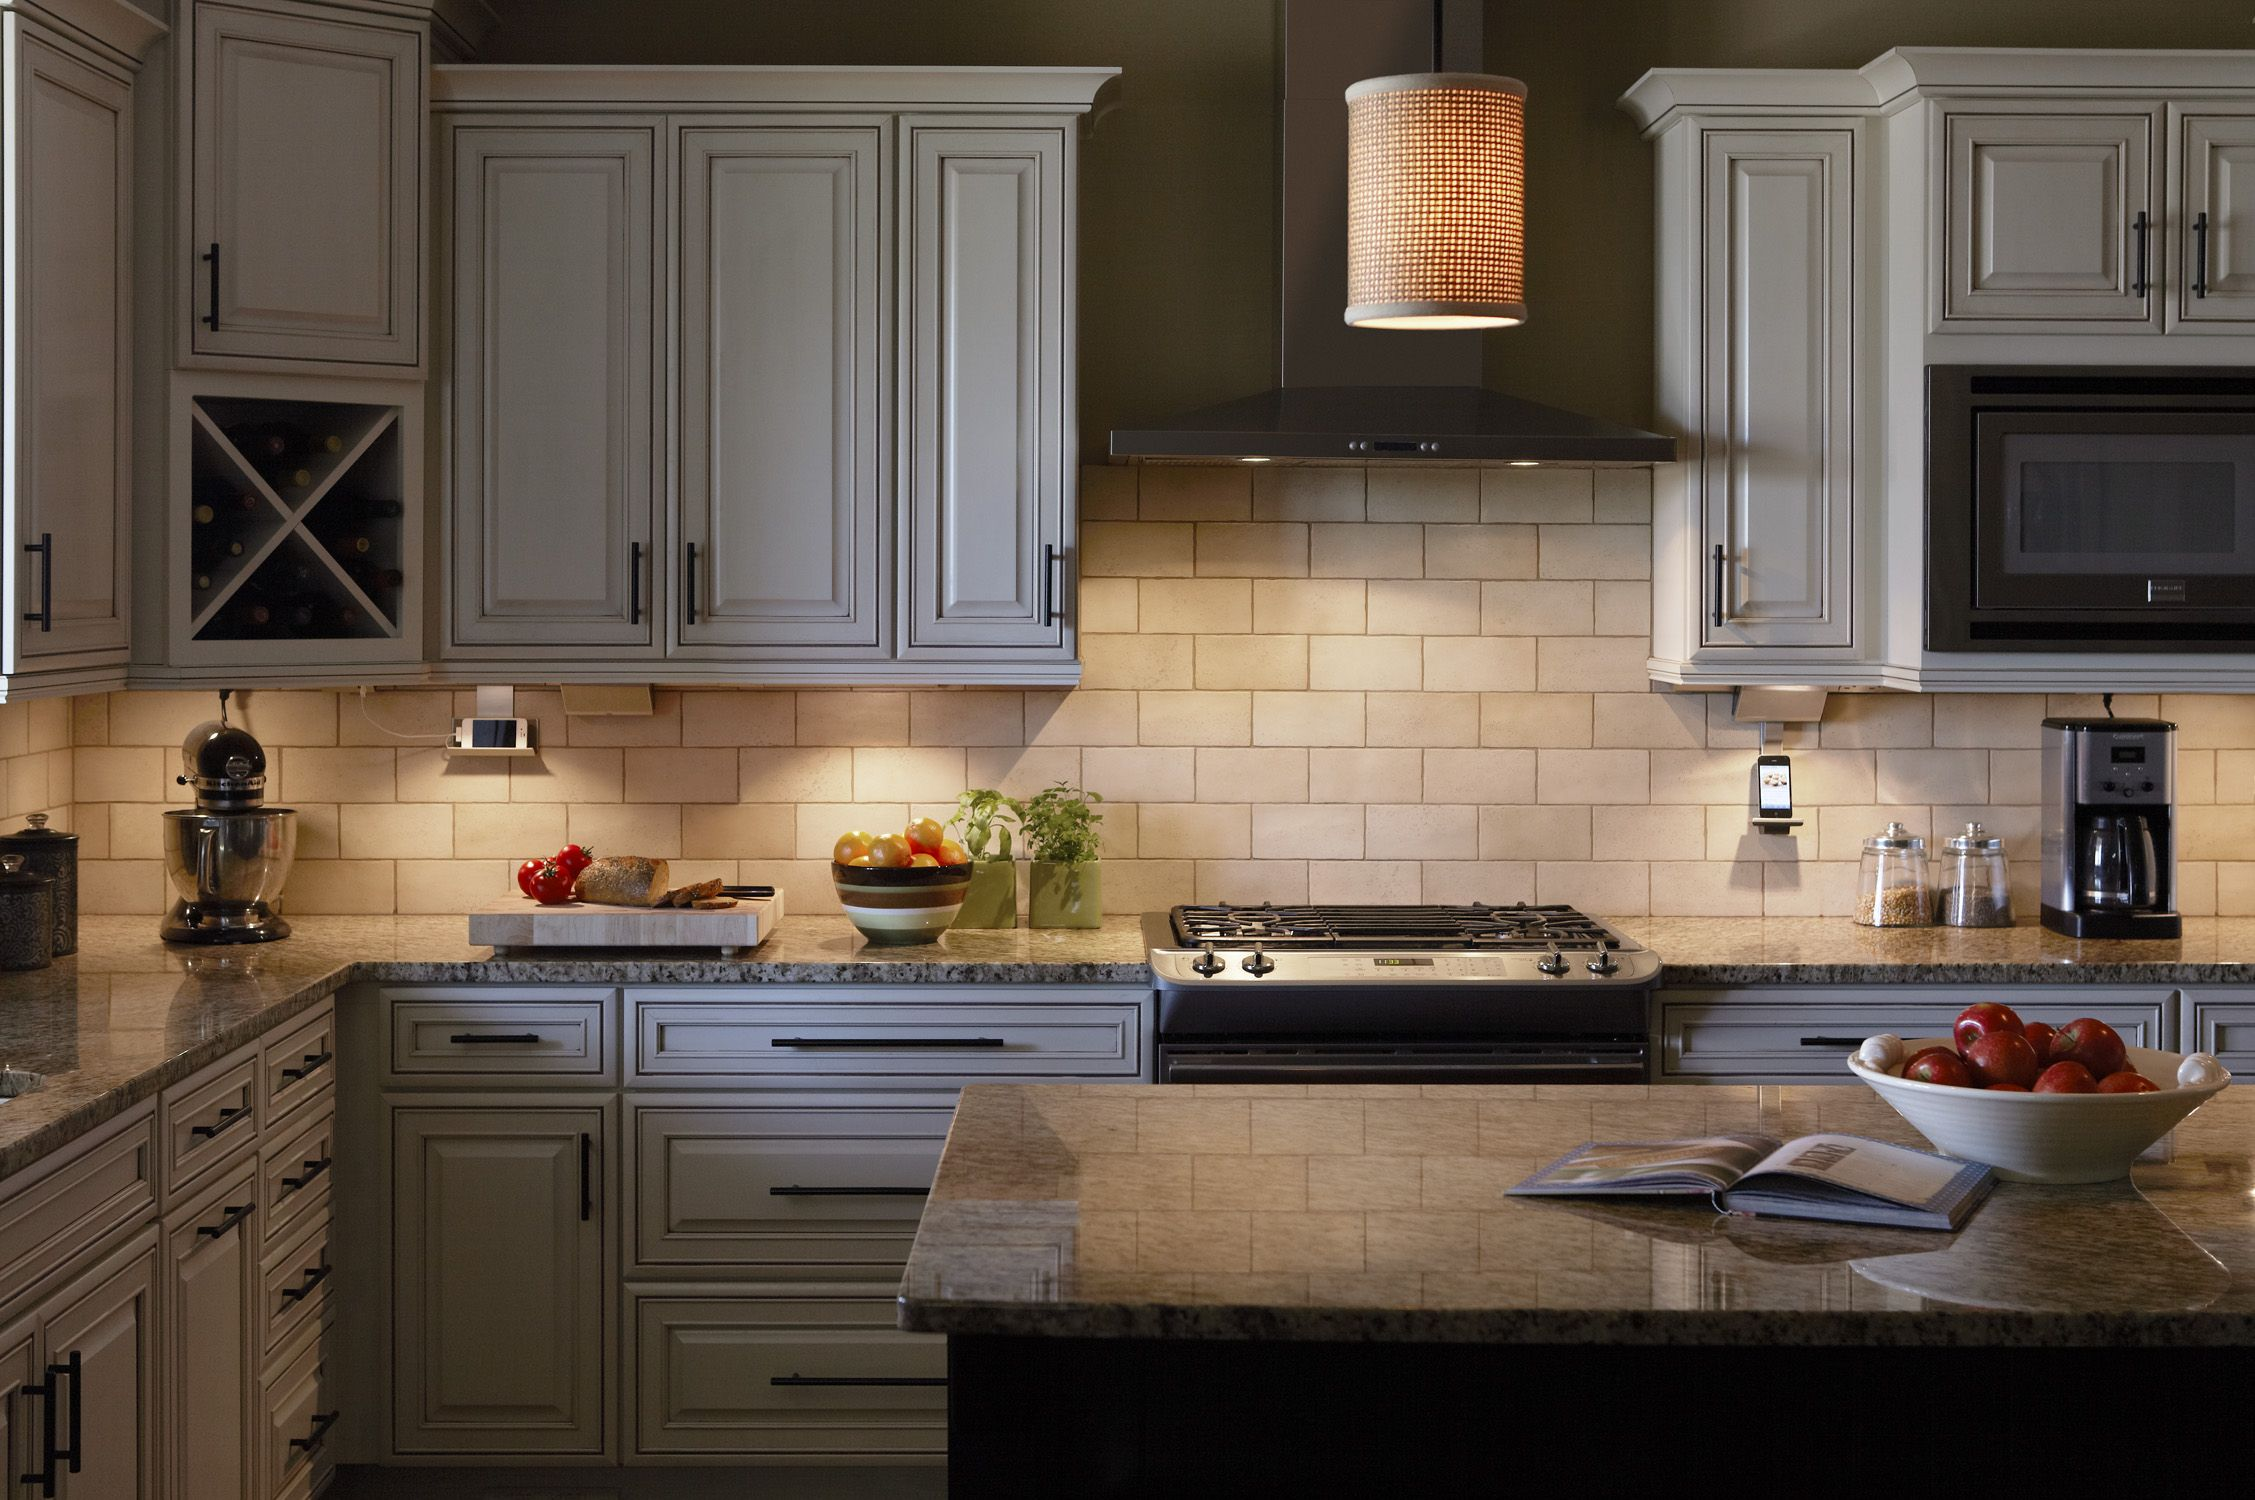 Get Those Countertops Clear And Make Way For Easy Breezy Kitchen